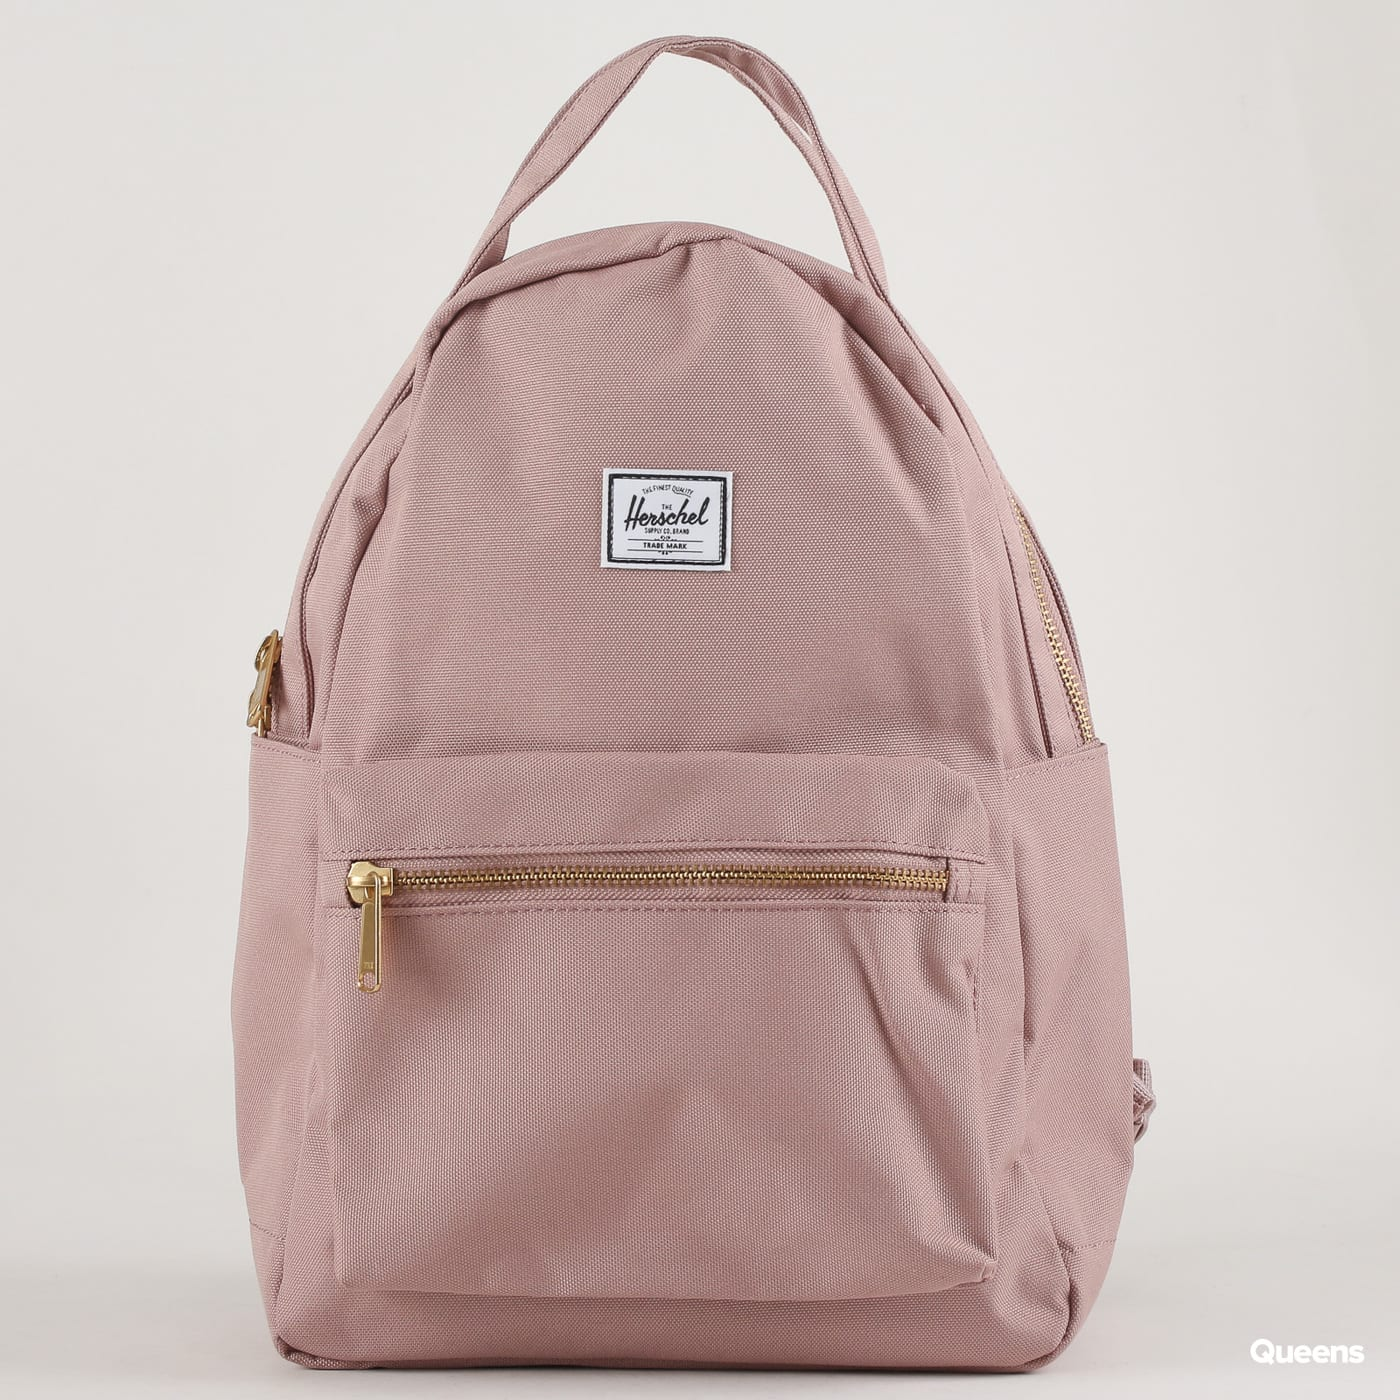 The Herschel Supply CO. Nova X-Small Backpack svetlofialový